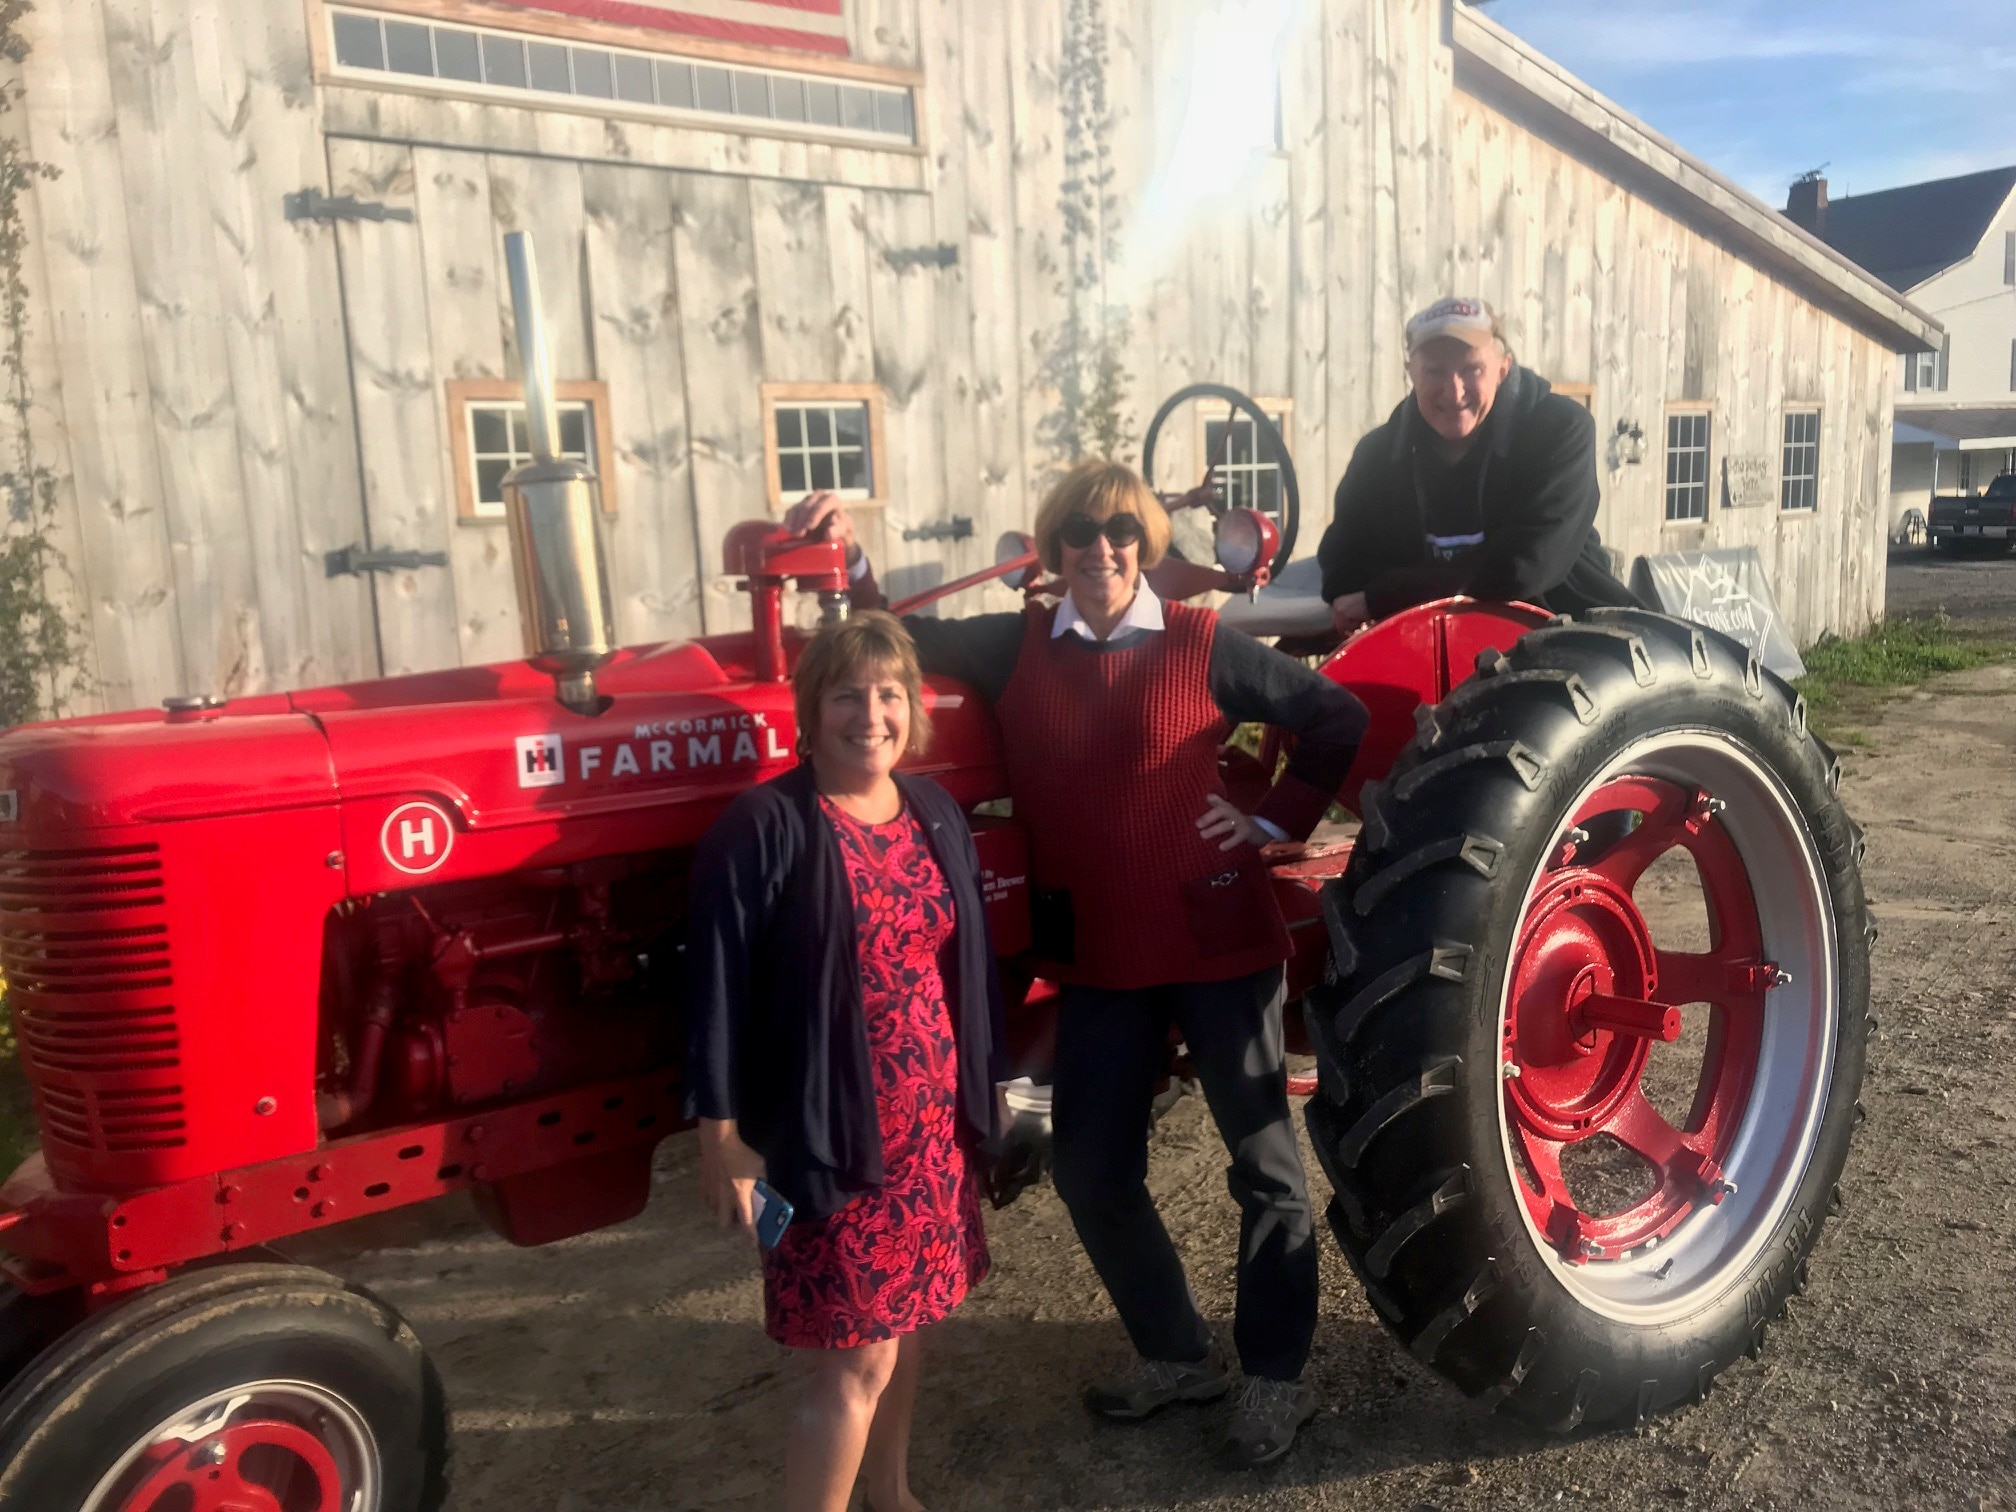 State Auditor Suzanne M. Bump (center), Former Sen. Stephen Brewer (right), and Sen. Anne Gobi (left) visited Carter & Stevens Farm in Barre to discuss issues impacting Massachusetts farmers.